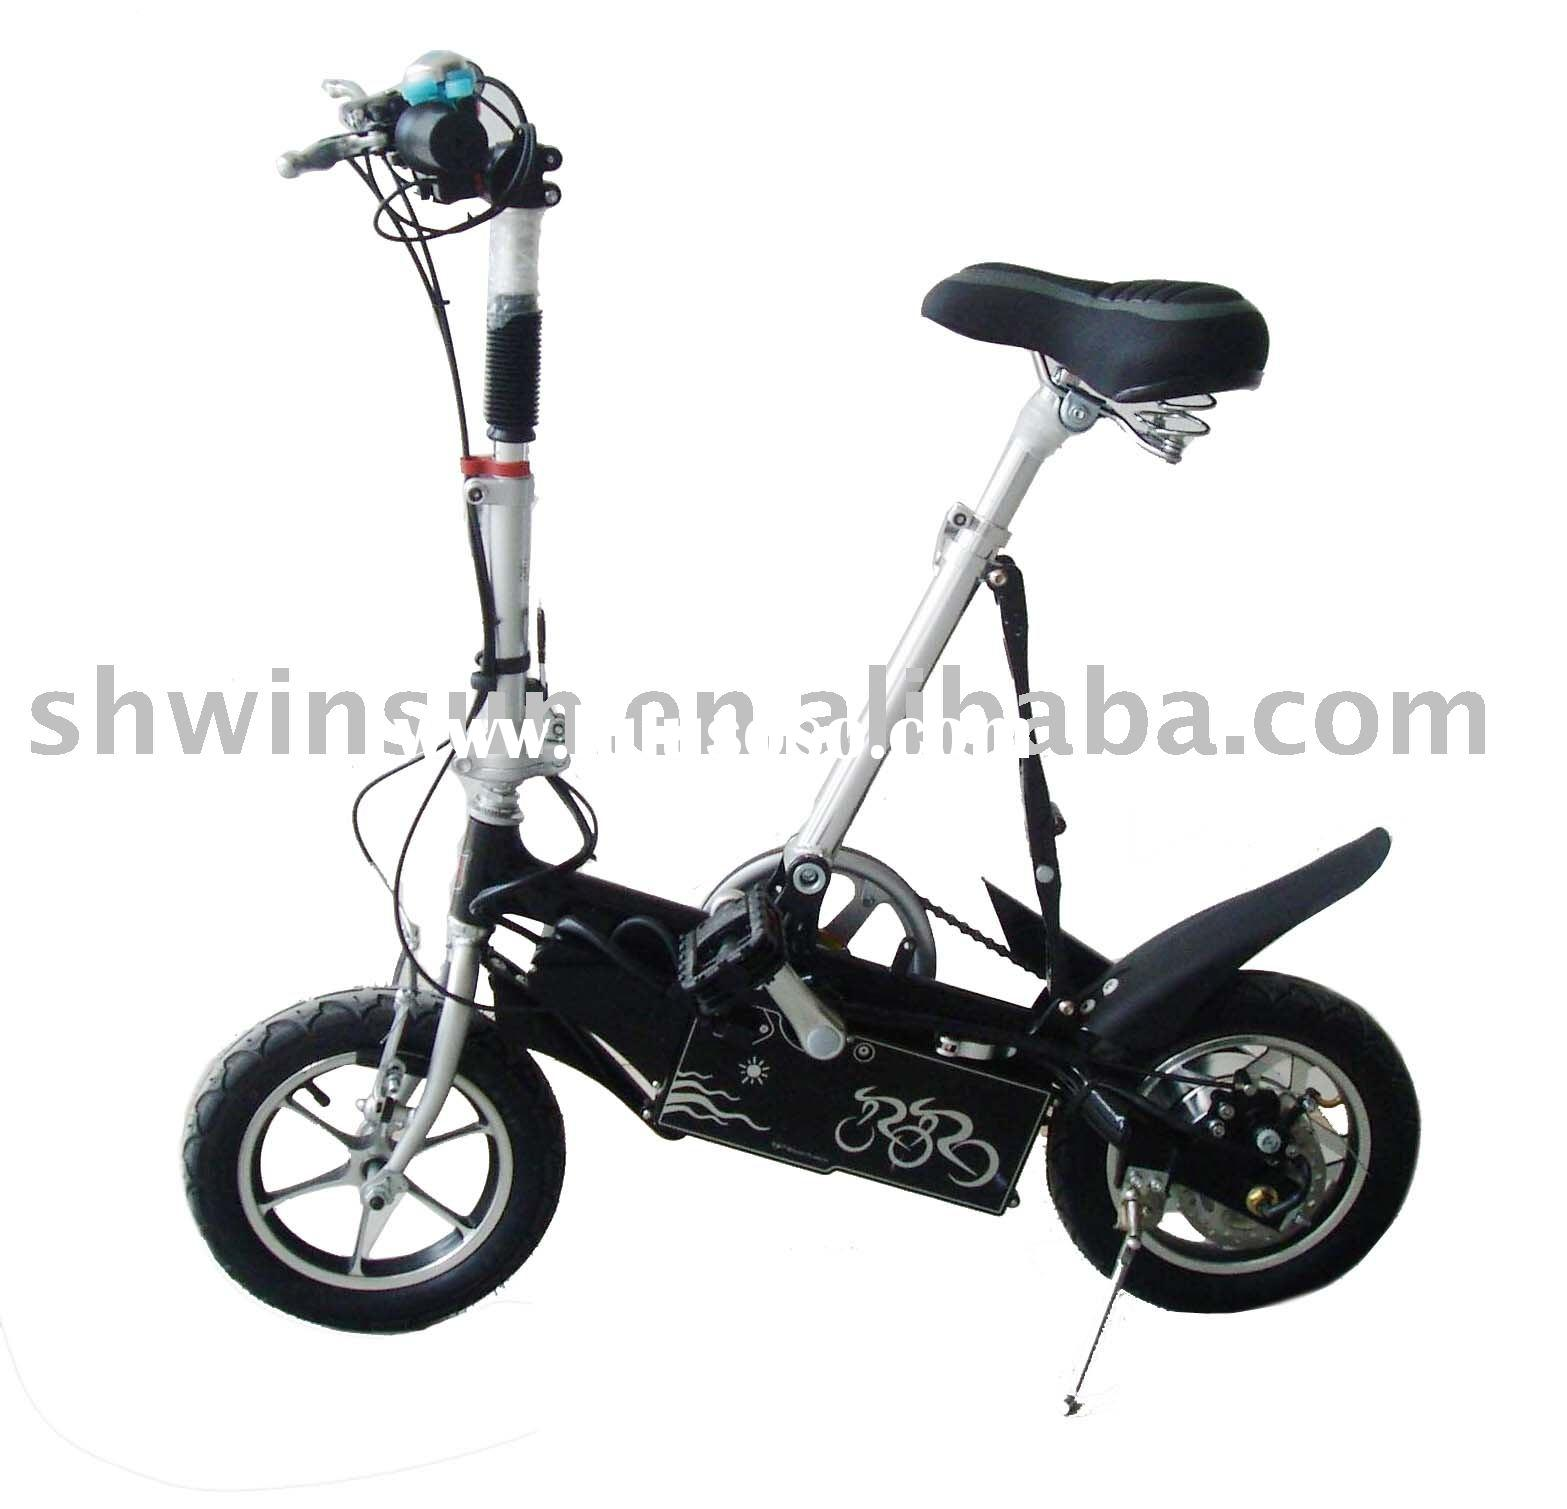 Electric scooter Mini bike mini electrical bike small mini bike e-bike e-bicycle foldable ebike fold